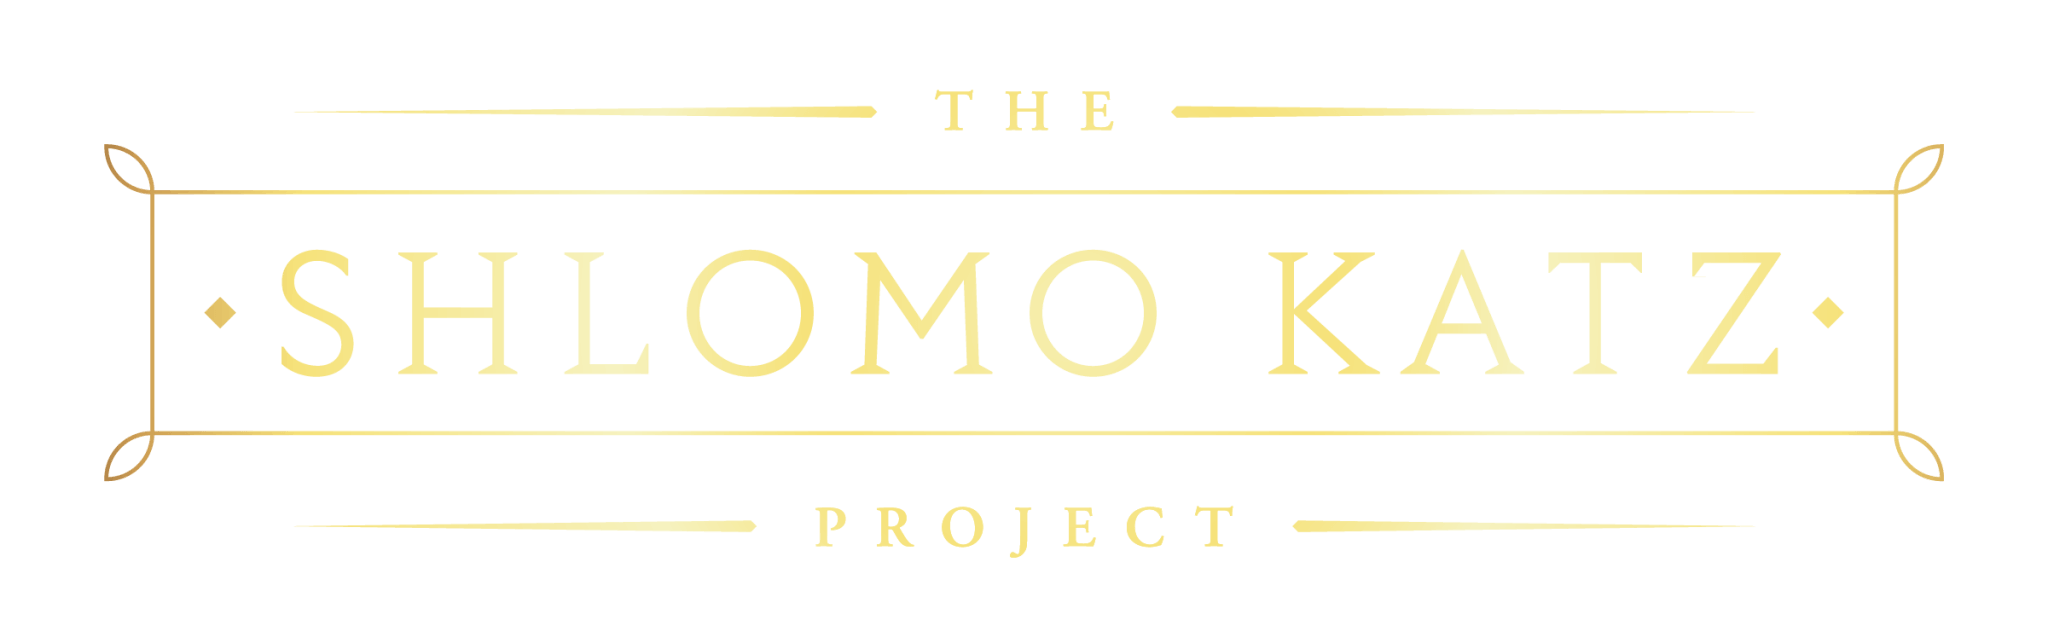 The Shlomo Katz Project